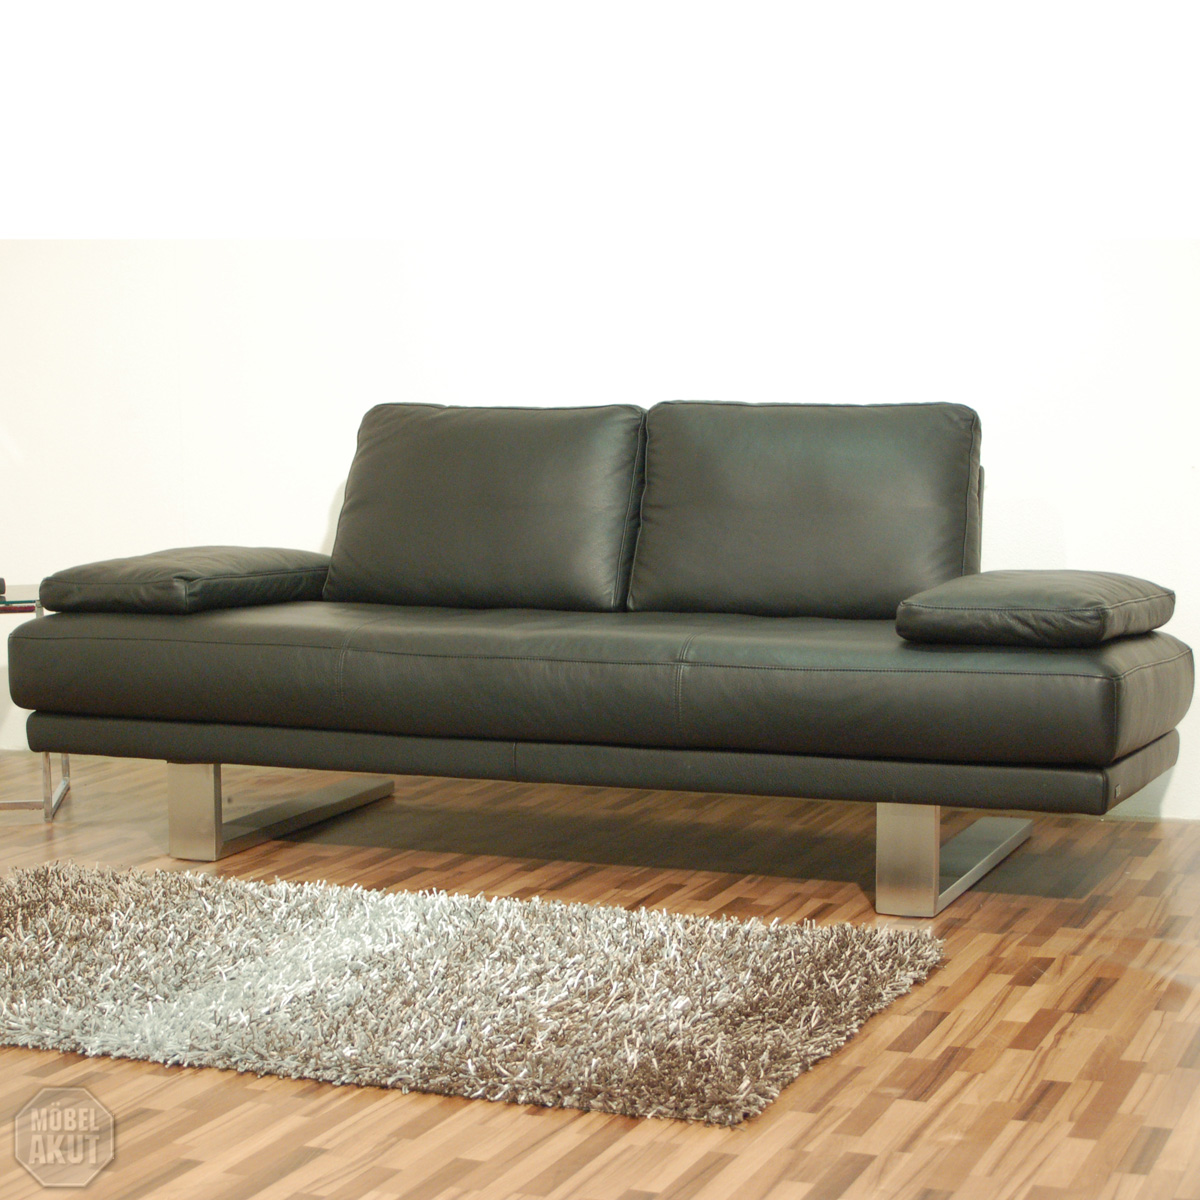 Original rolf benz freischwinger sofa sob 6600 in for Couch benz